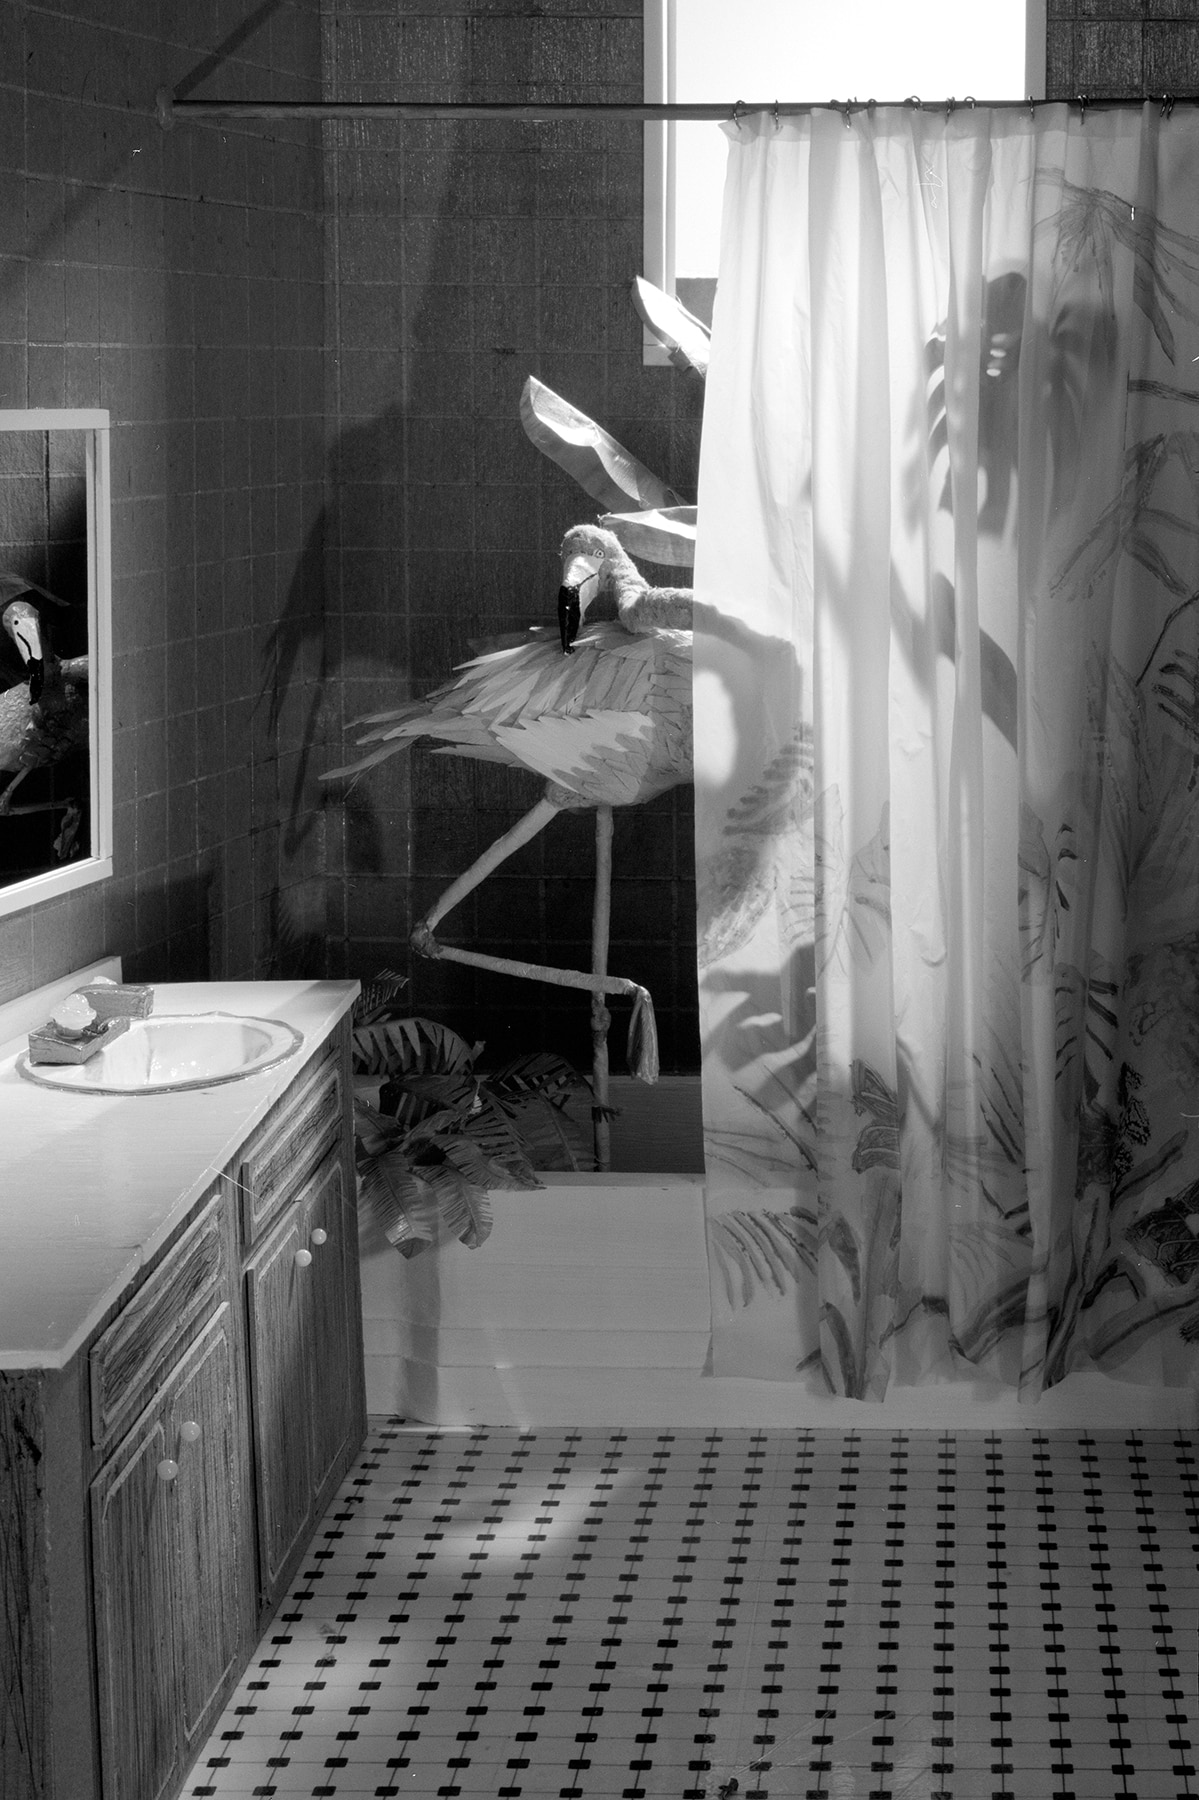 Black and white photo of a fake flamingo in a shower, everything in the photo is a miniature model constructed by the artist